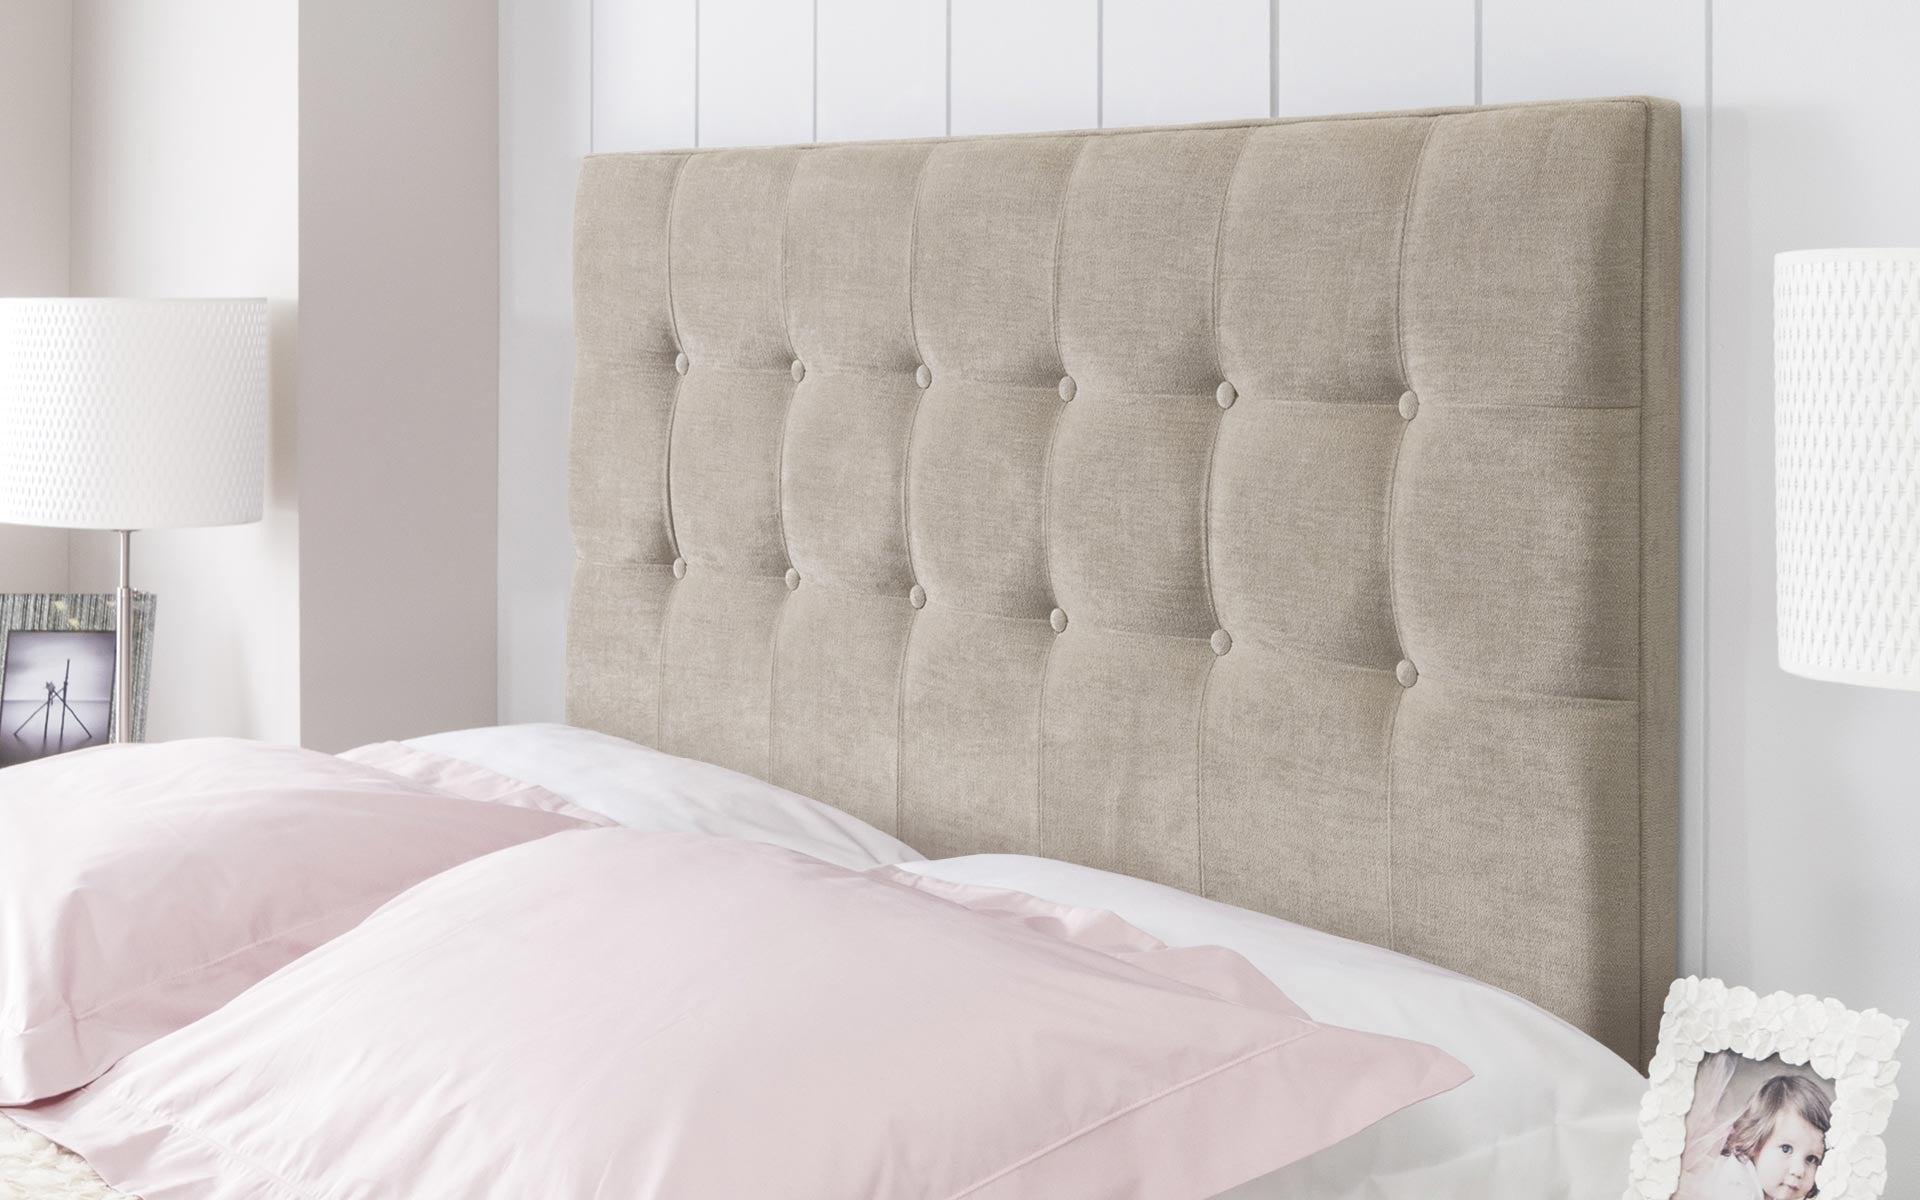 products buttoned a in bed upholstered bab mounted bespoke headboard fabric tucked wall retro smo smoke loaf